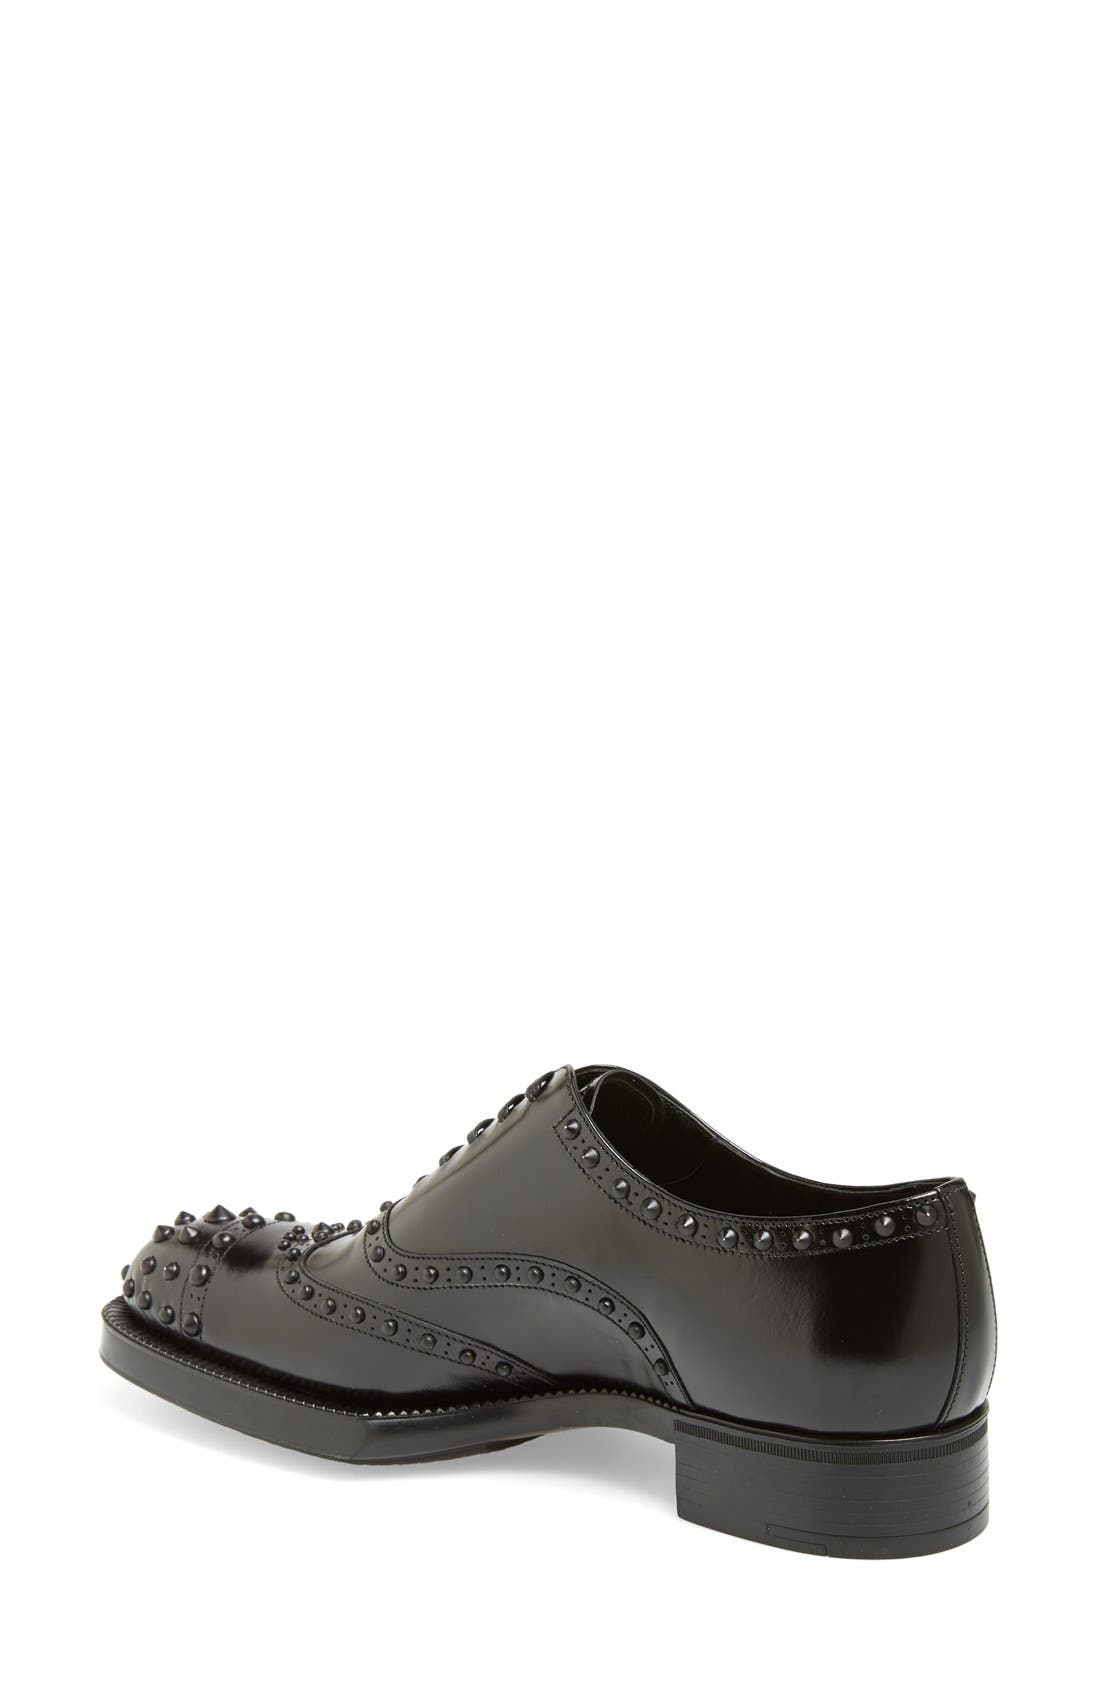 Alternate Image 2  - Prada Studded Wingtip Oxford (Women)